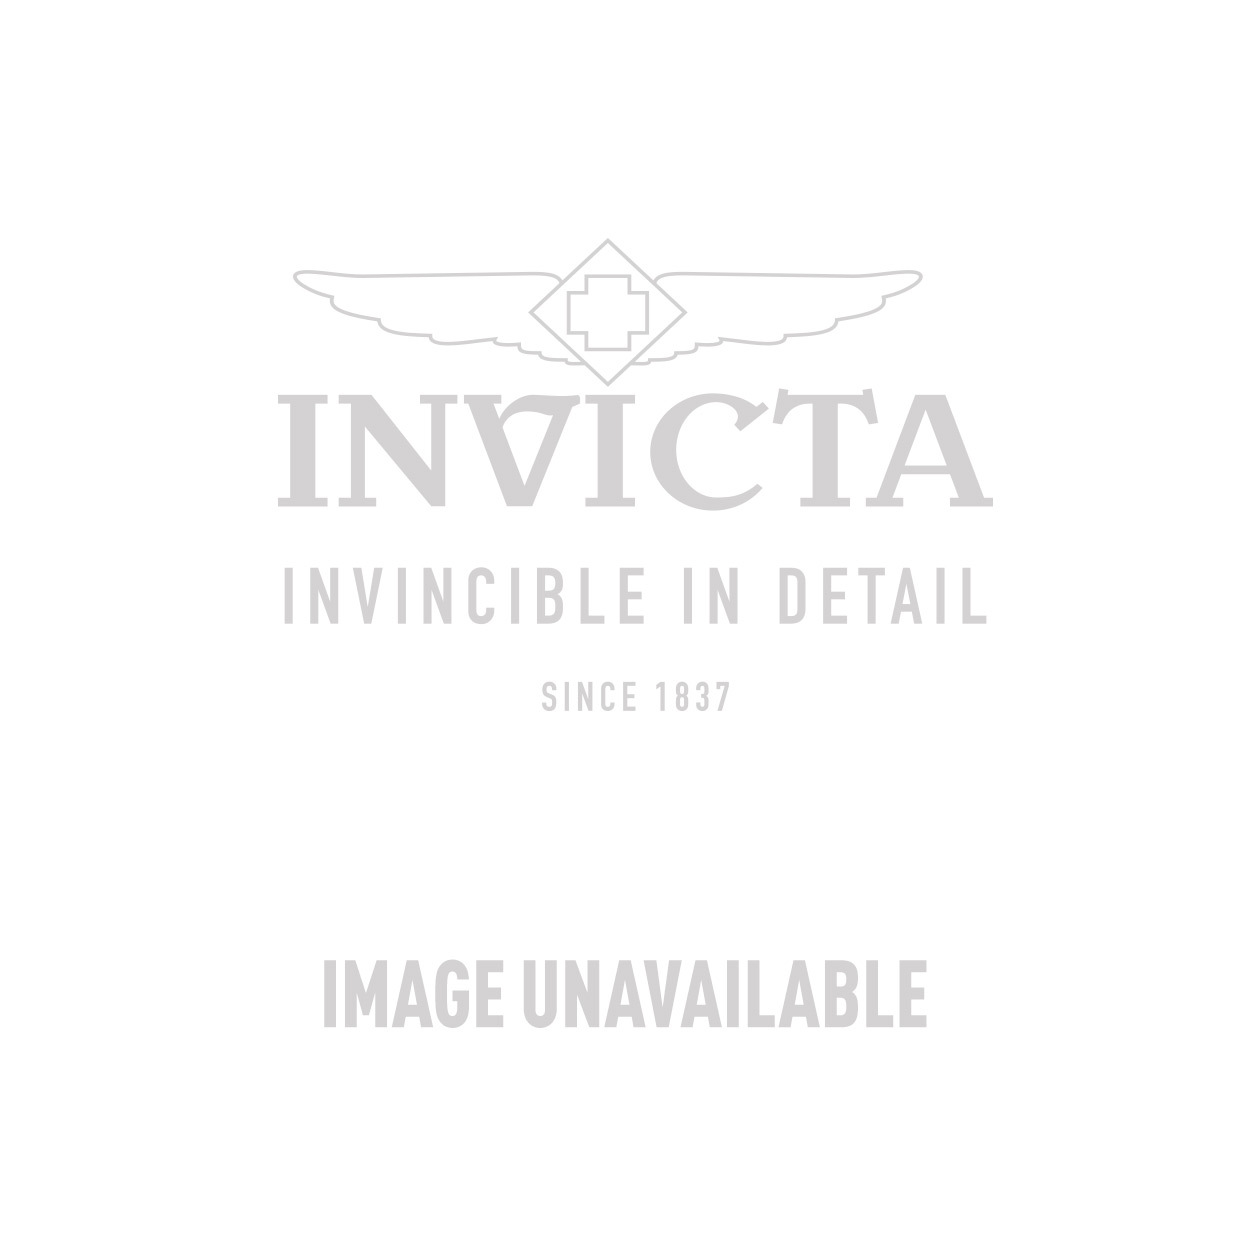 Invicta Pro Diver Automatic Watch - Stainless Steel case Stainless Steel band - Model 5053